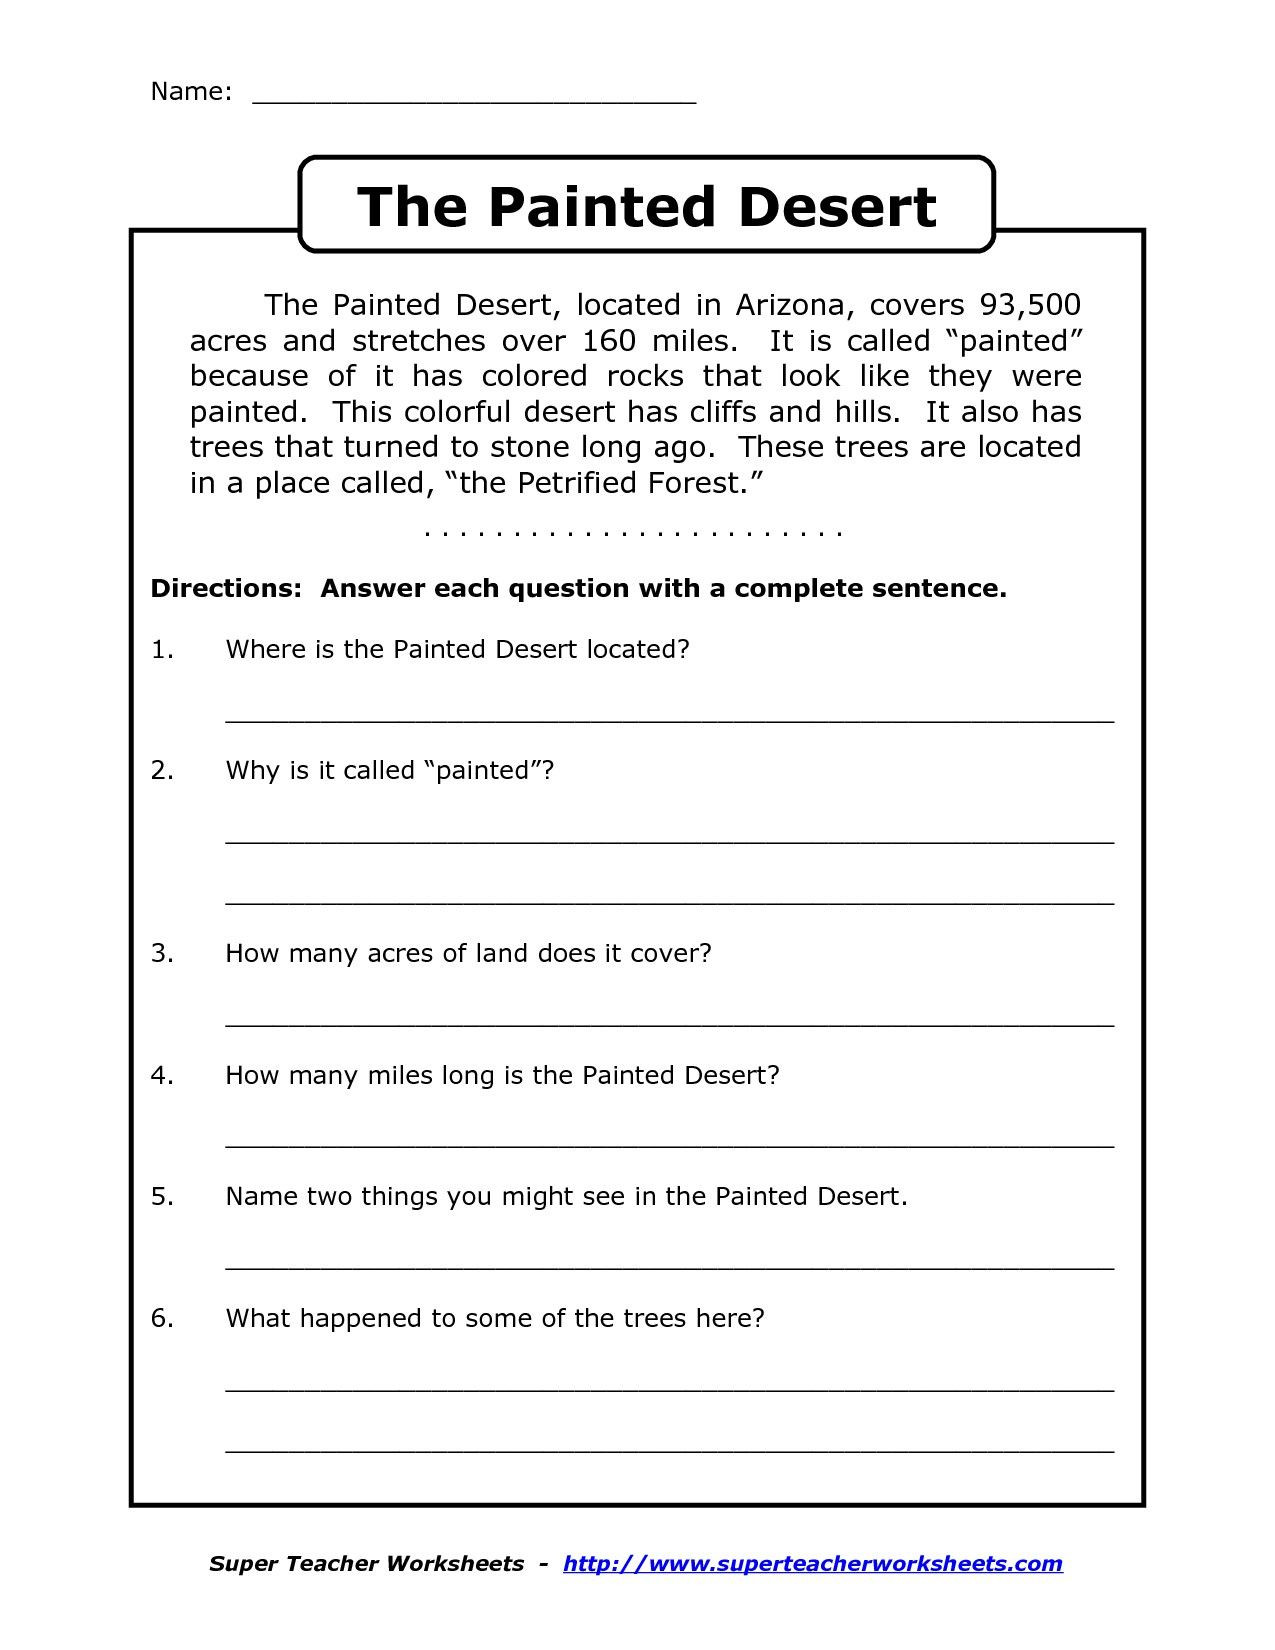 5th Grade Worksheets Printable Reading Image Result for Free Printable Worksheets for Grade 4